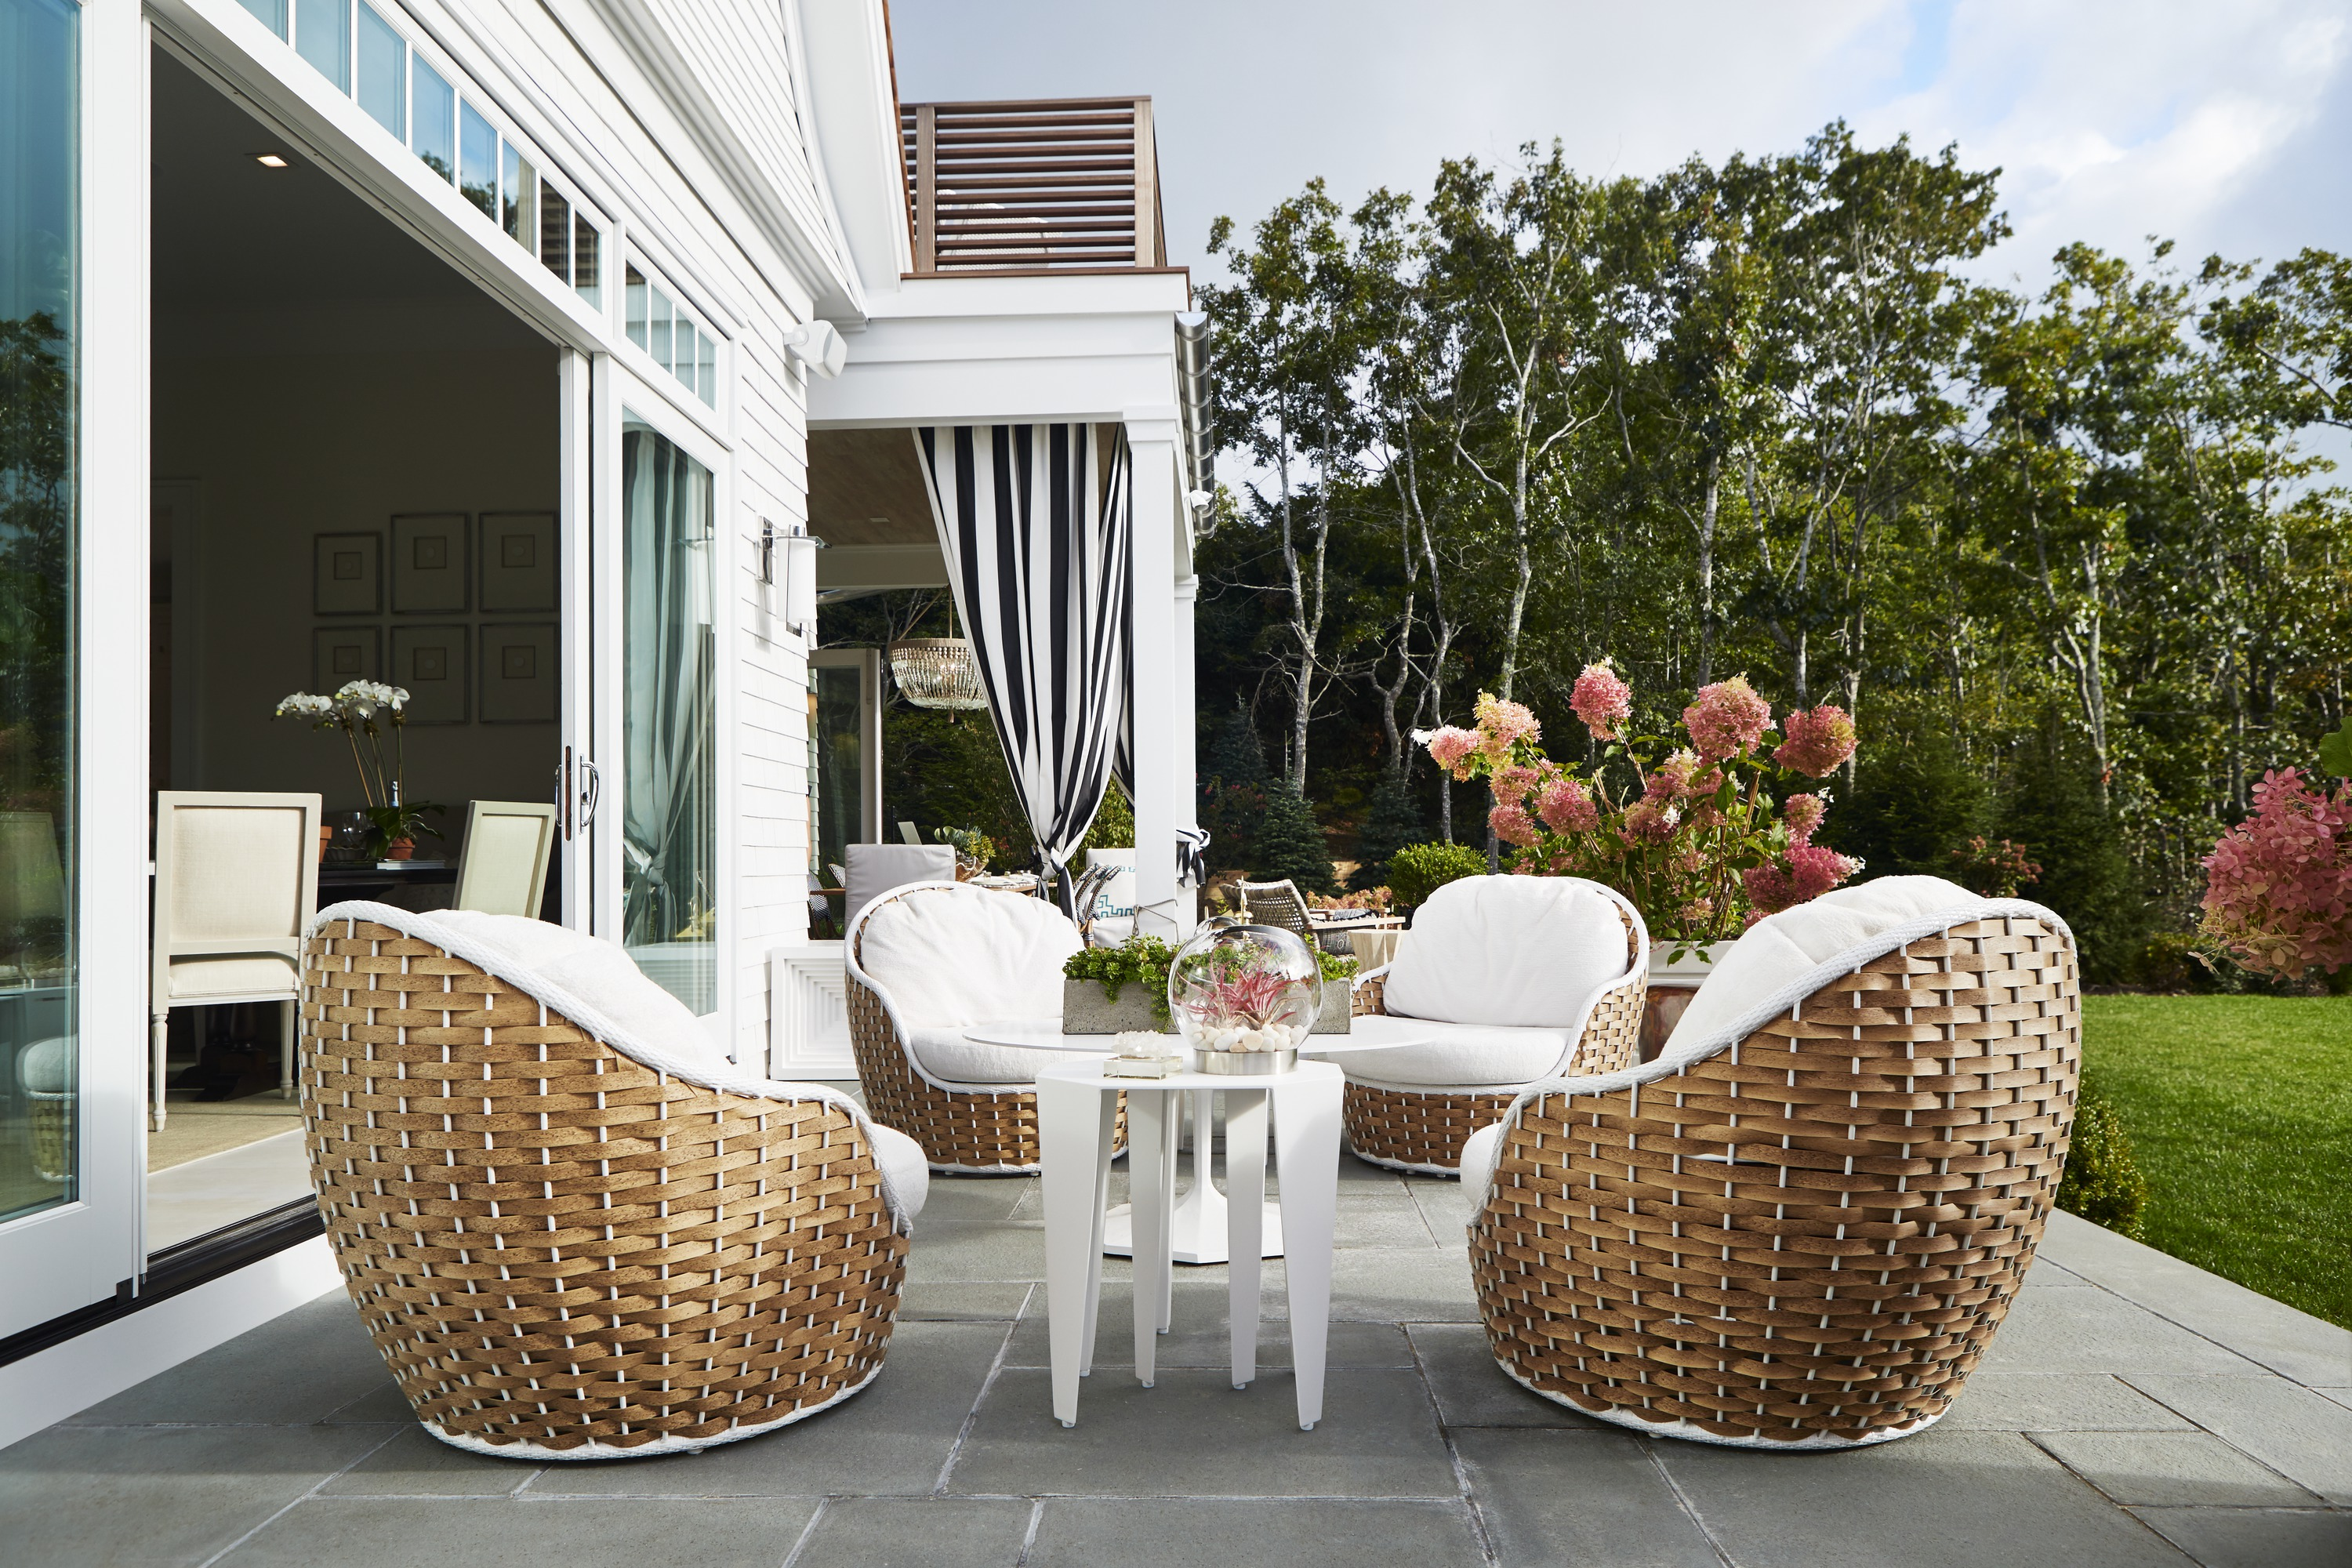 The terrace seating area, created by the Baltimore Design Group, carries the relaxed luxury of the great room outside using contemporary woven oversized chairs.